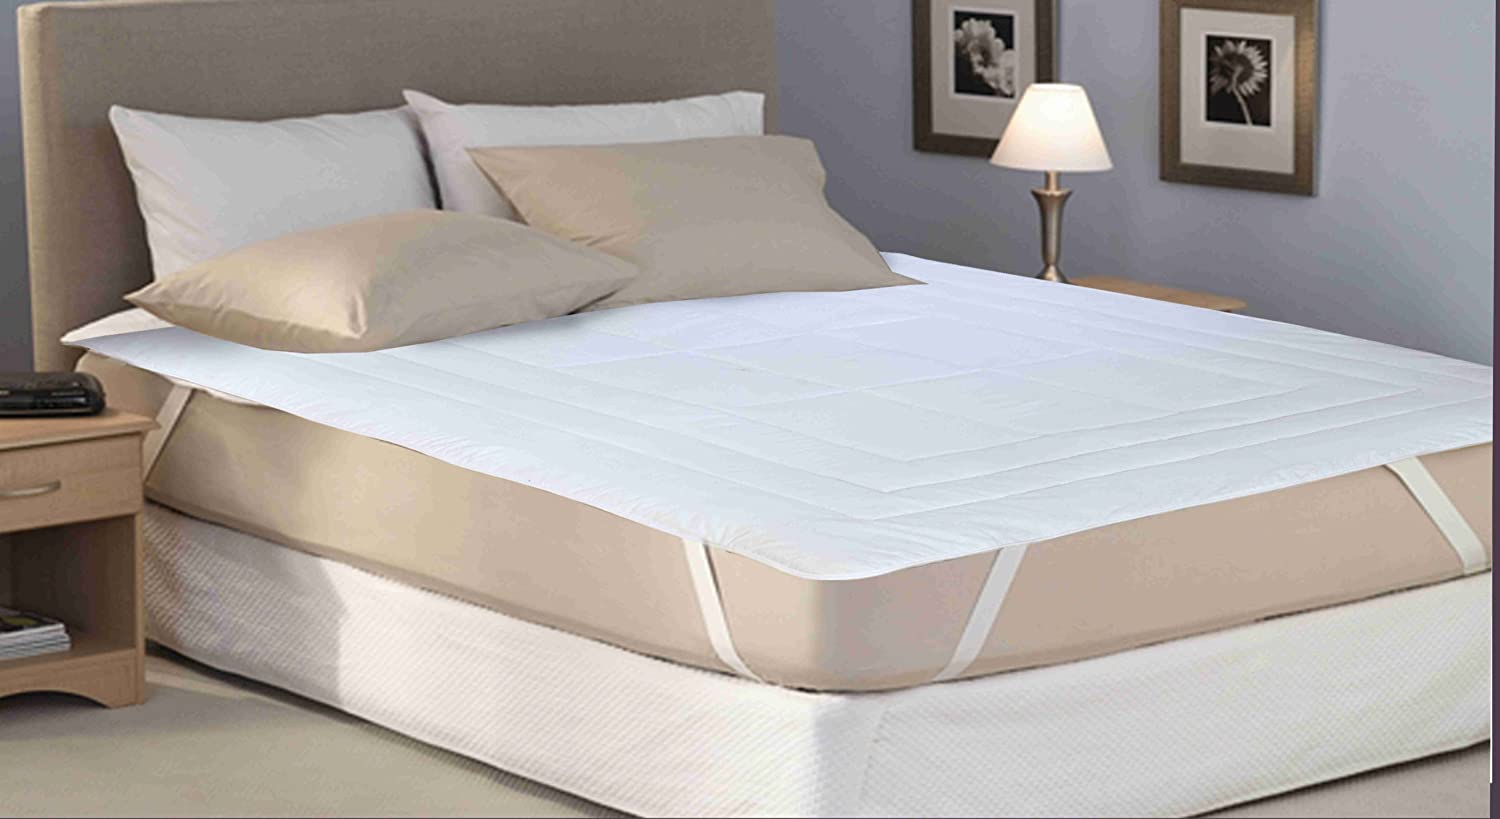 SleepyNights COMFORT HOTEL QUALITY MATTRESS TOPPER//PROTECTOR//REVIVER//ENHANCER SUPERKING HOLLOWFIBRE FILLING POLY COTTON STICHING